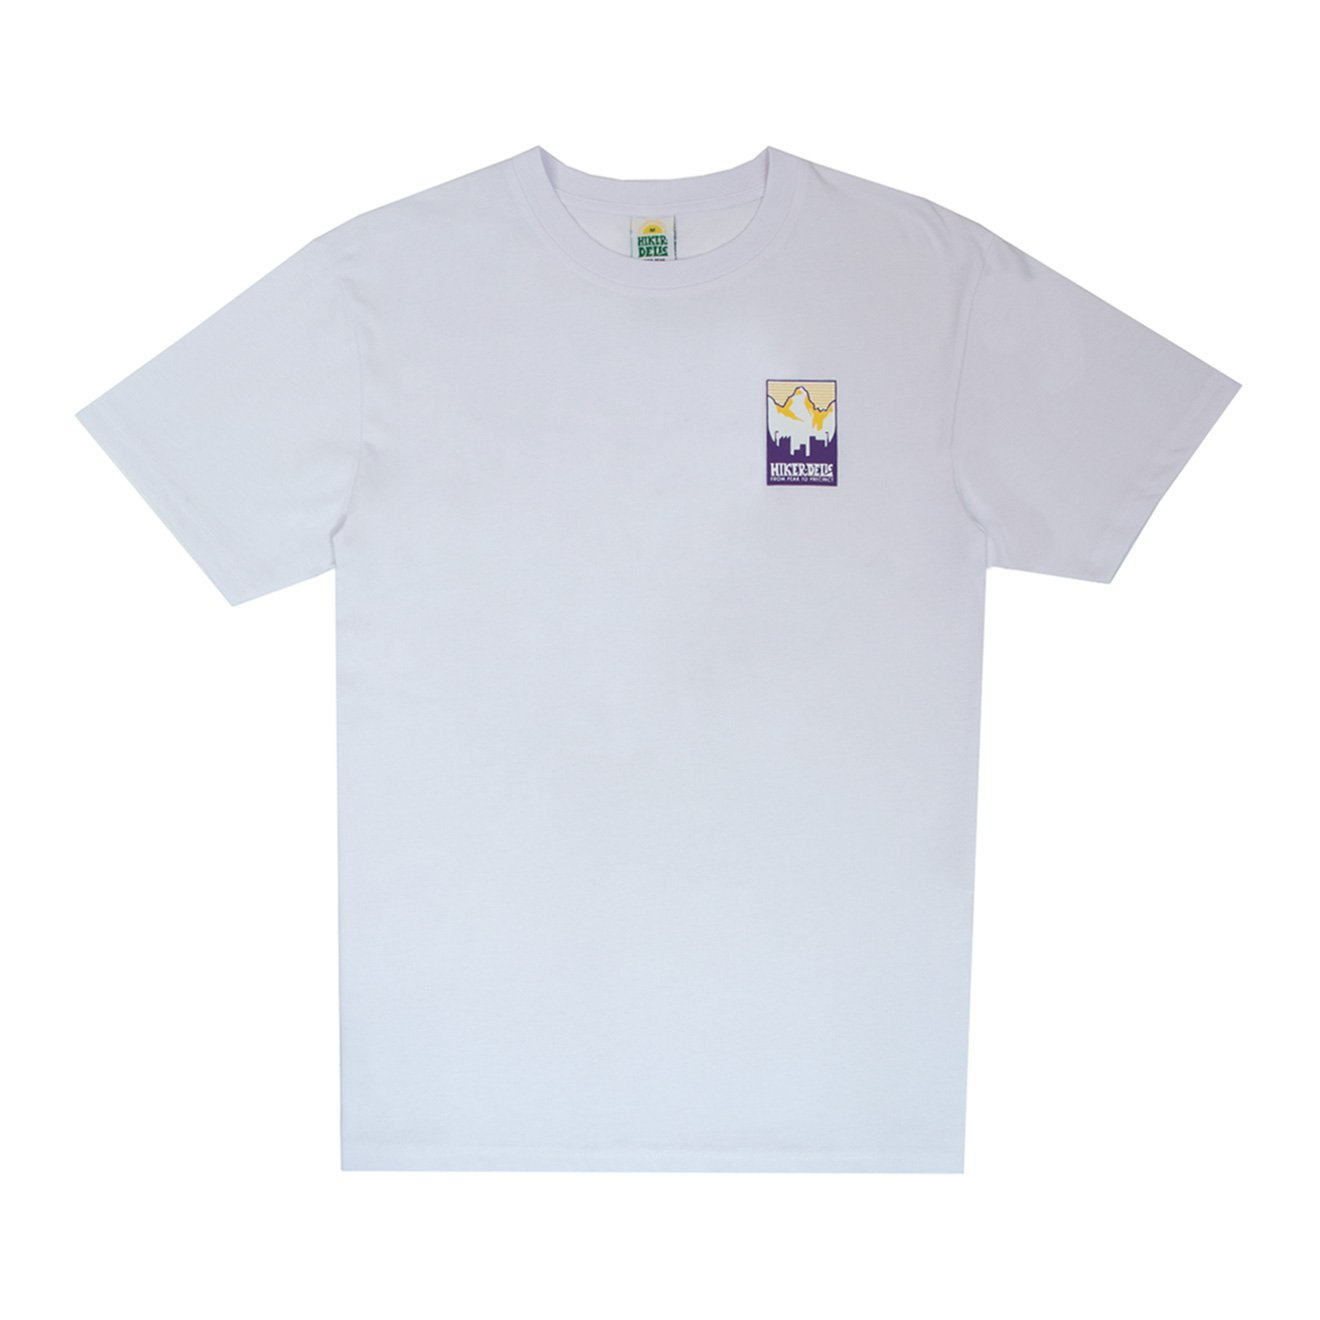 Hikerdelic-Patch-Print-Logo-Short-Sleeve-T-Shirt—White—001_1320x